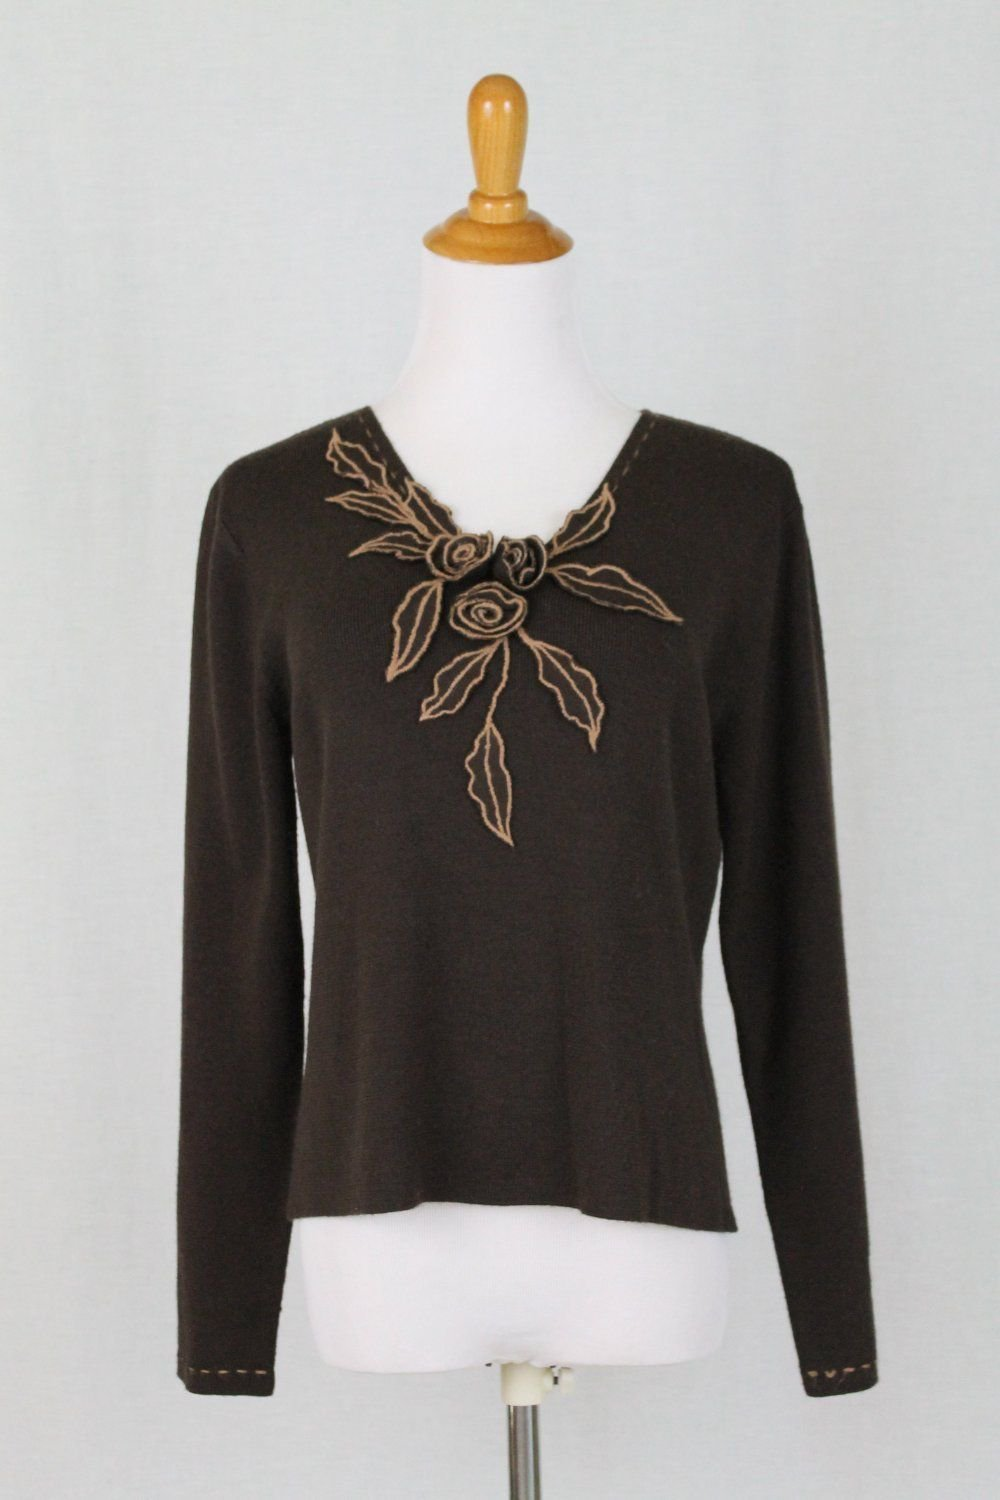 Vintage Adrianna Papell Brown Wool Blend Embroidered V-Neck Sweater Sz Medium